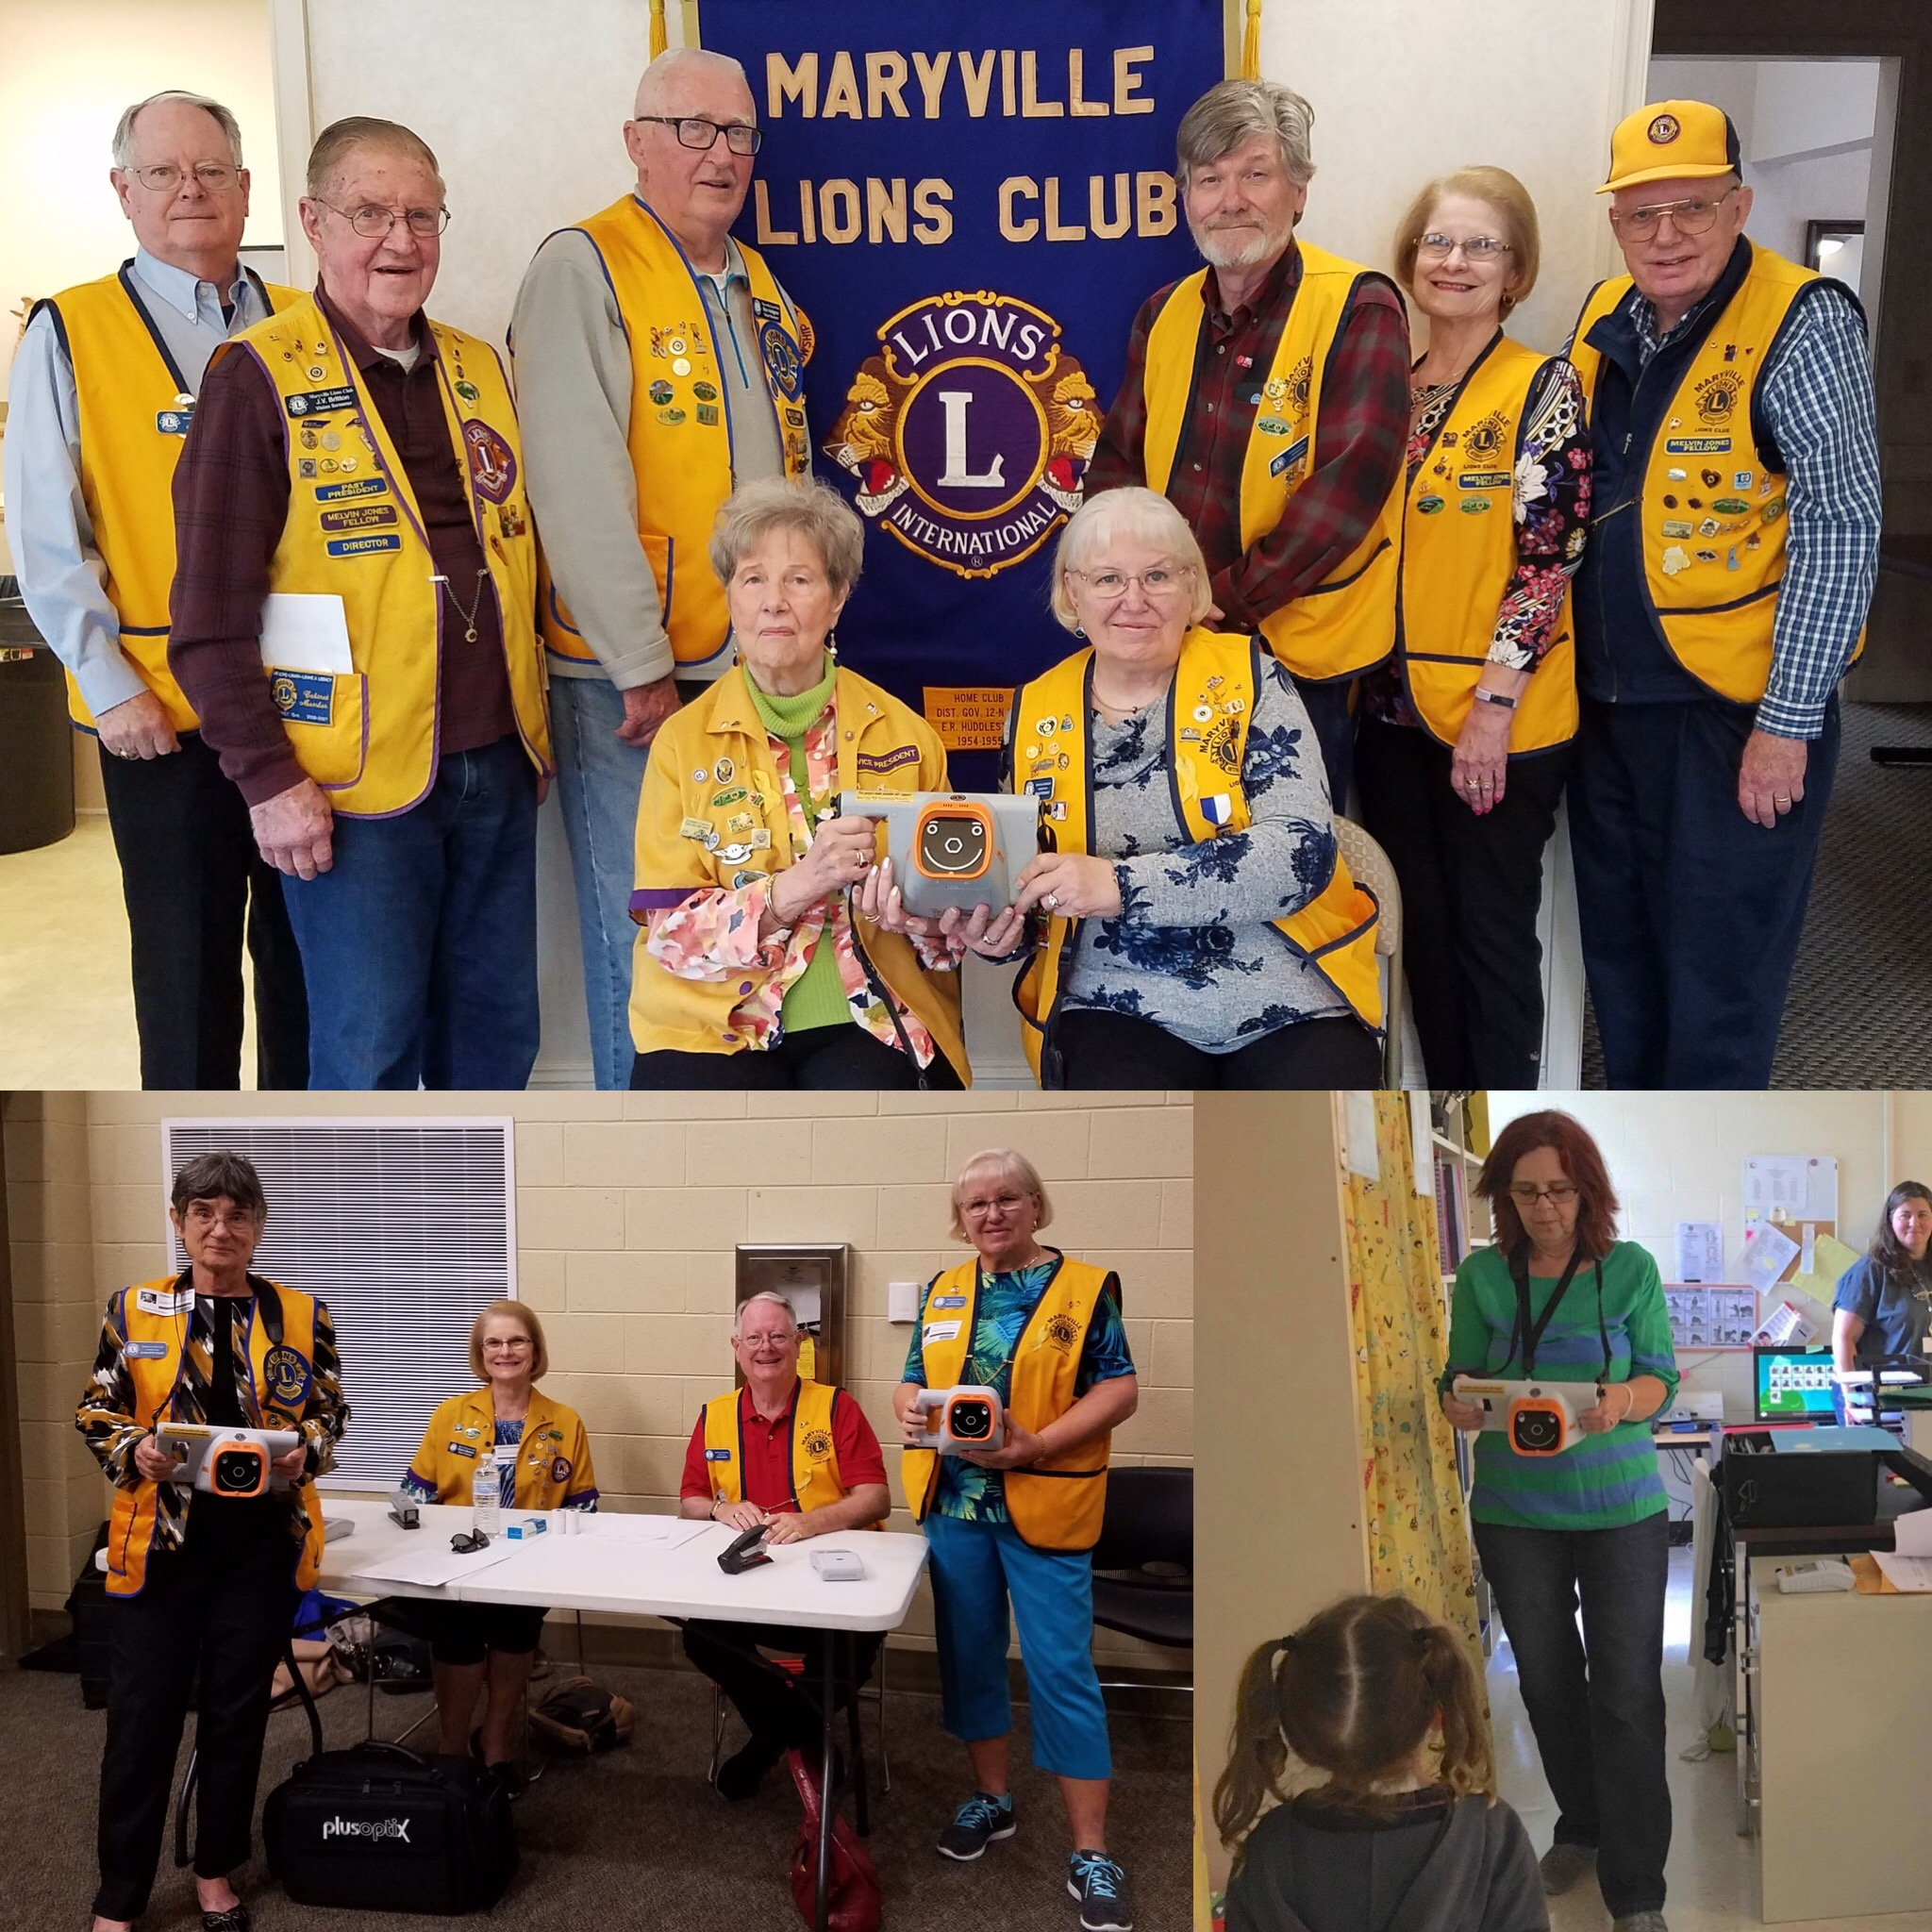 Maryville Lions Club